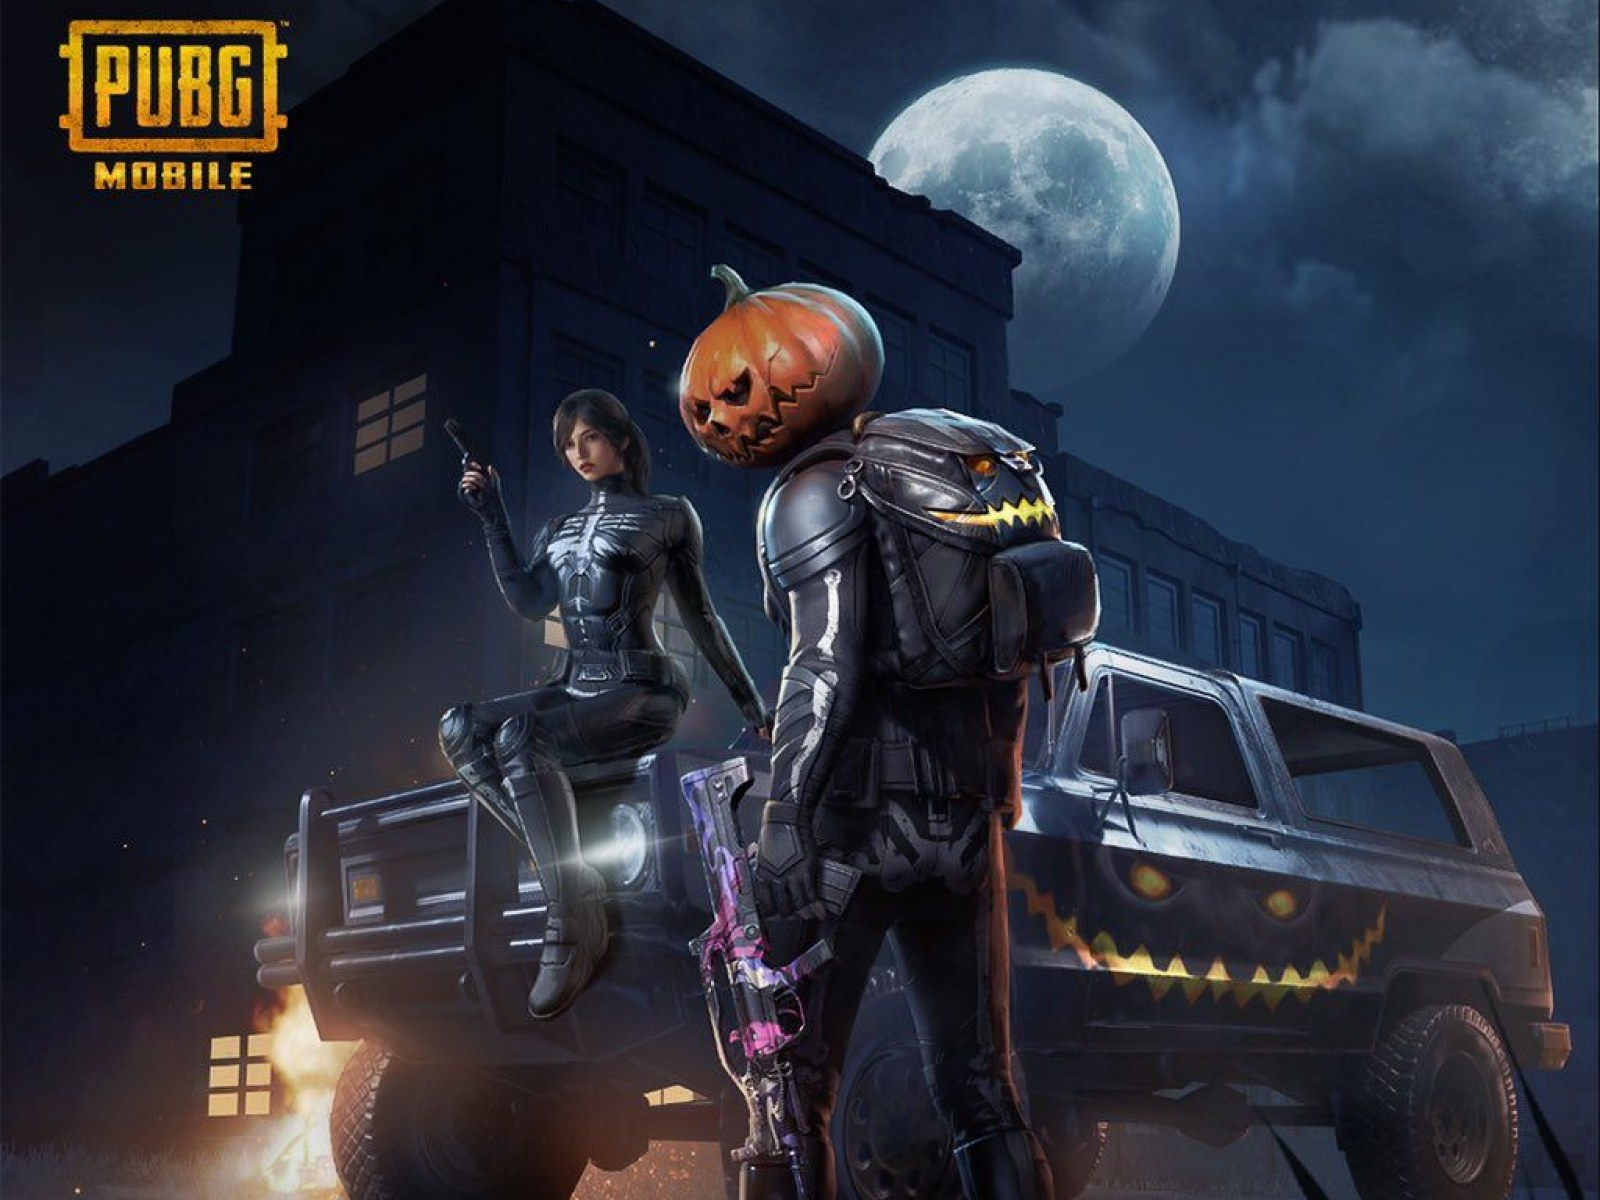 Pubg Mobile Update 0 9 0 Adds Halloween Skins Night Mode Patch - pubg mobile update 0 9 0 adds halloween skins night mode patch notes